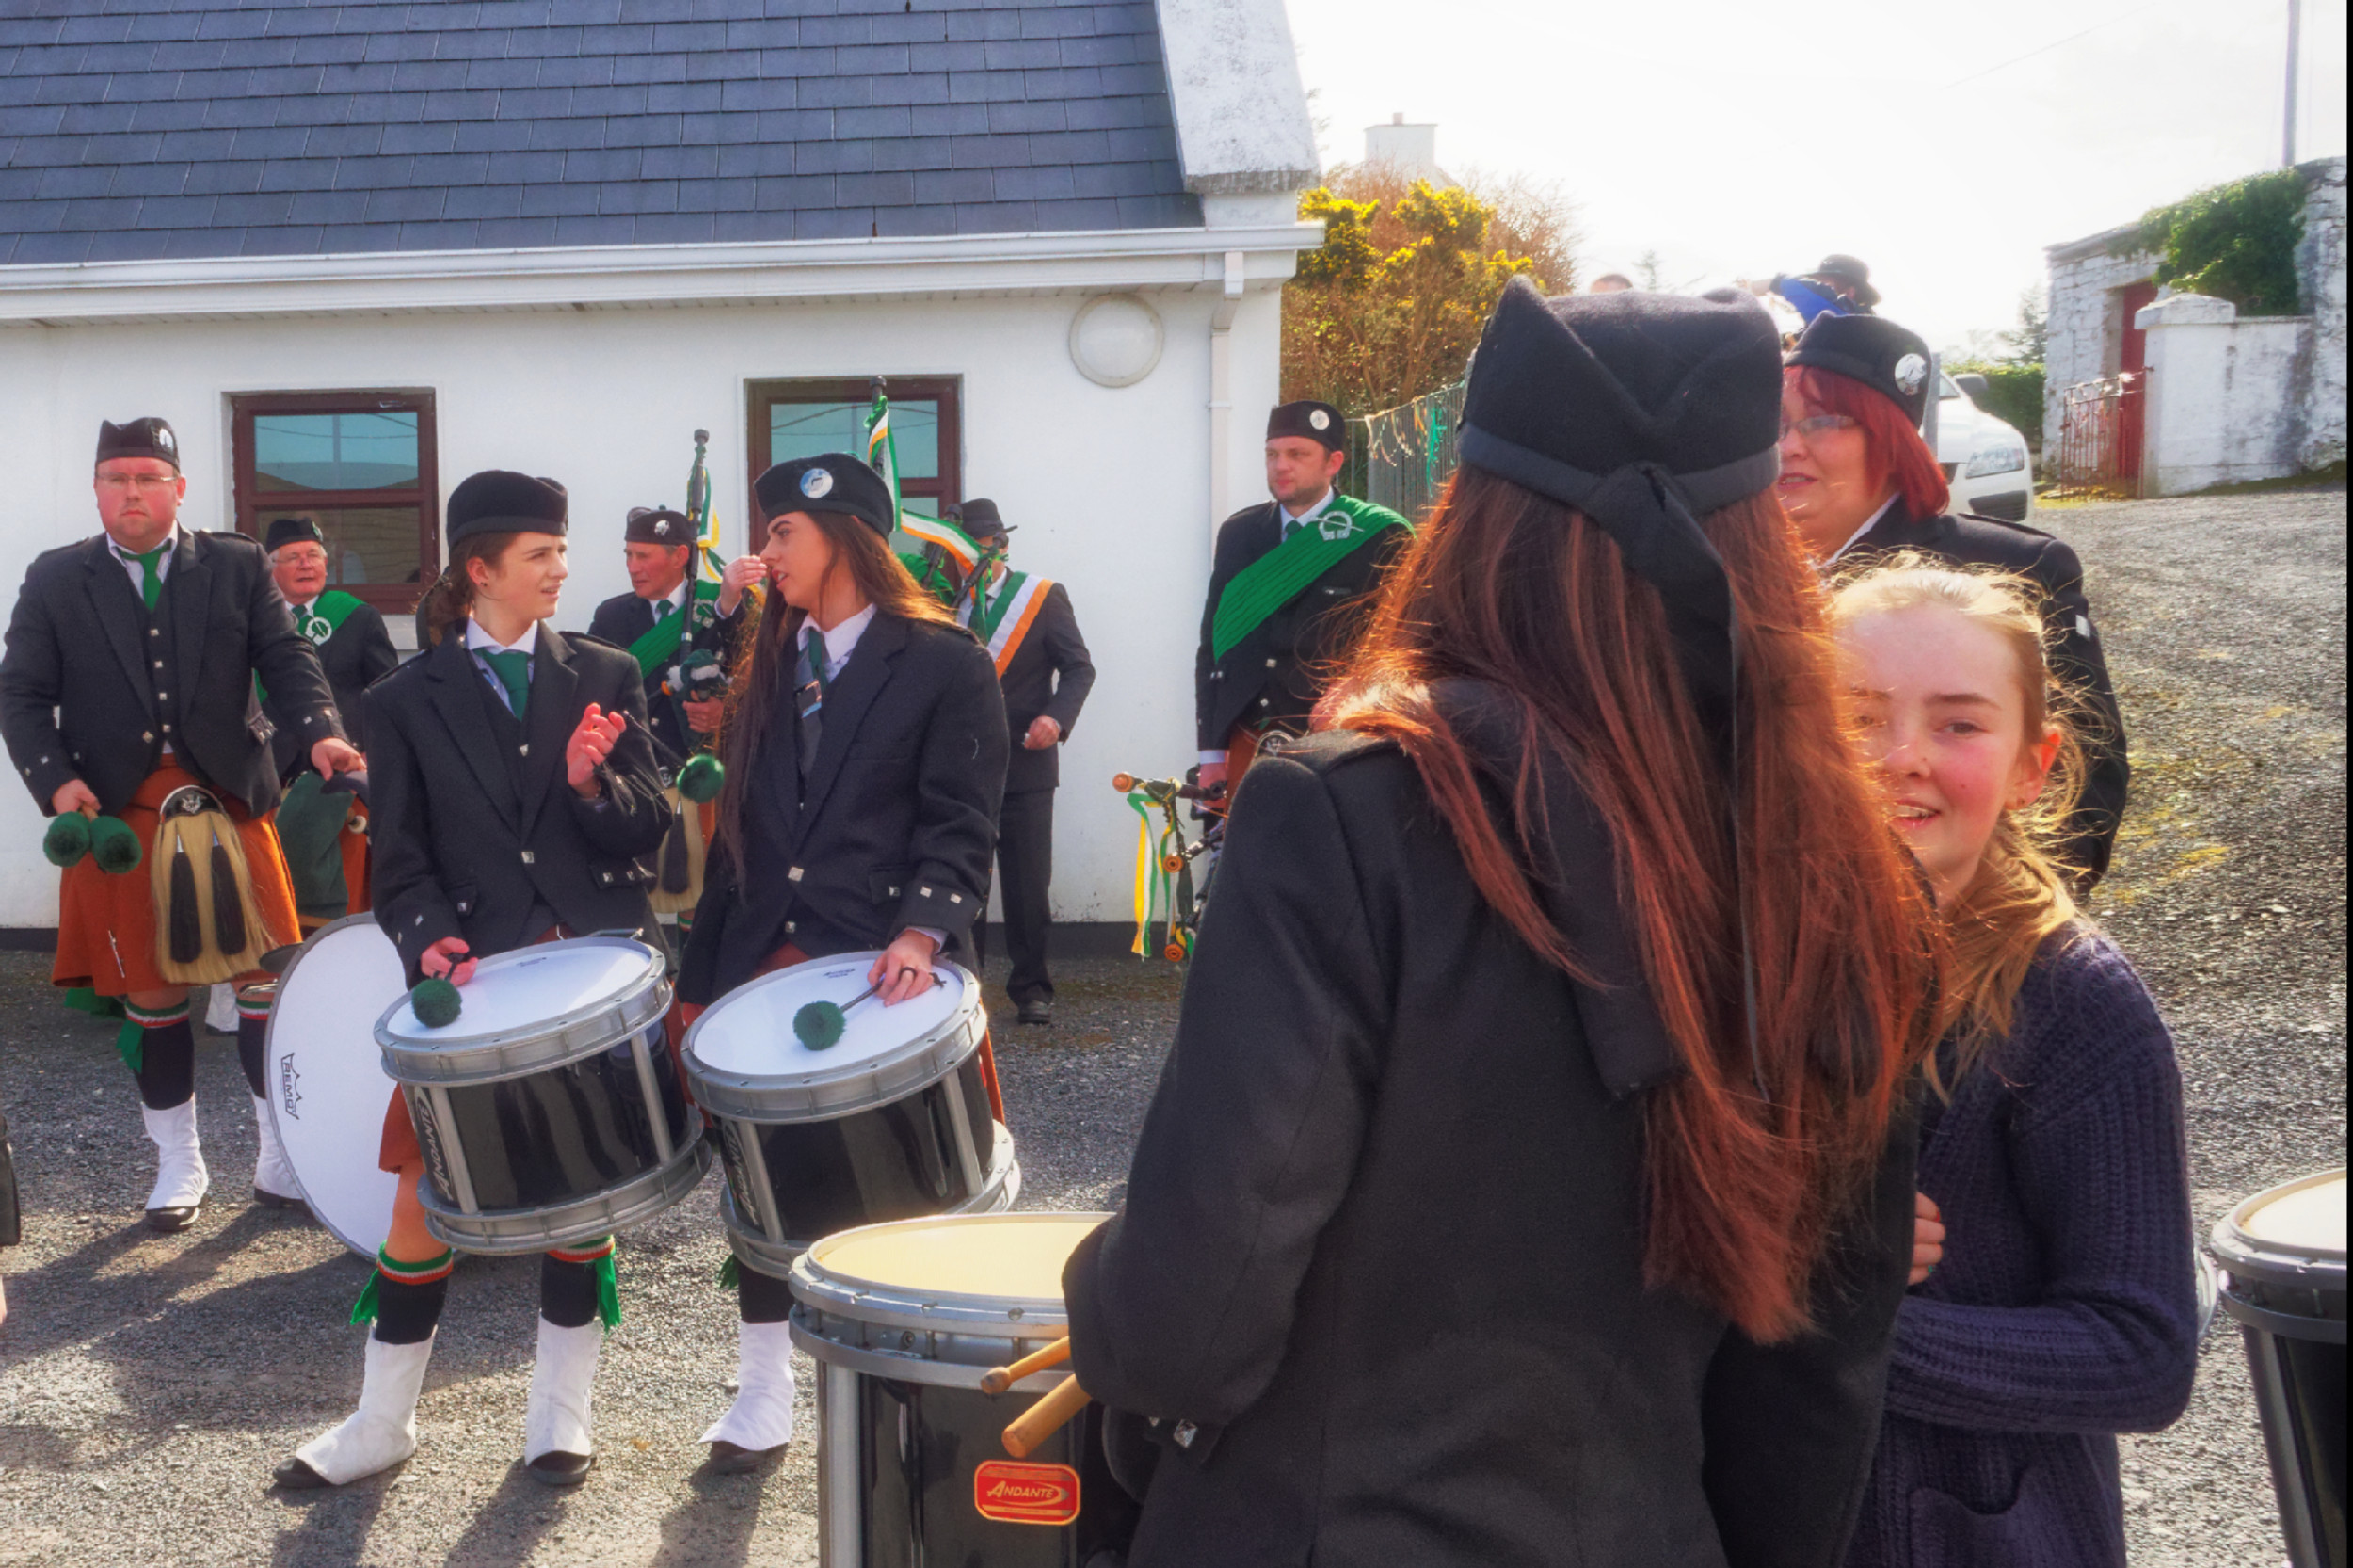 20160320131506-ie-achill-sound_parade-_DxO_13in_DxO96